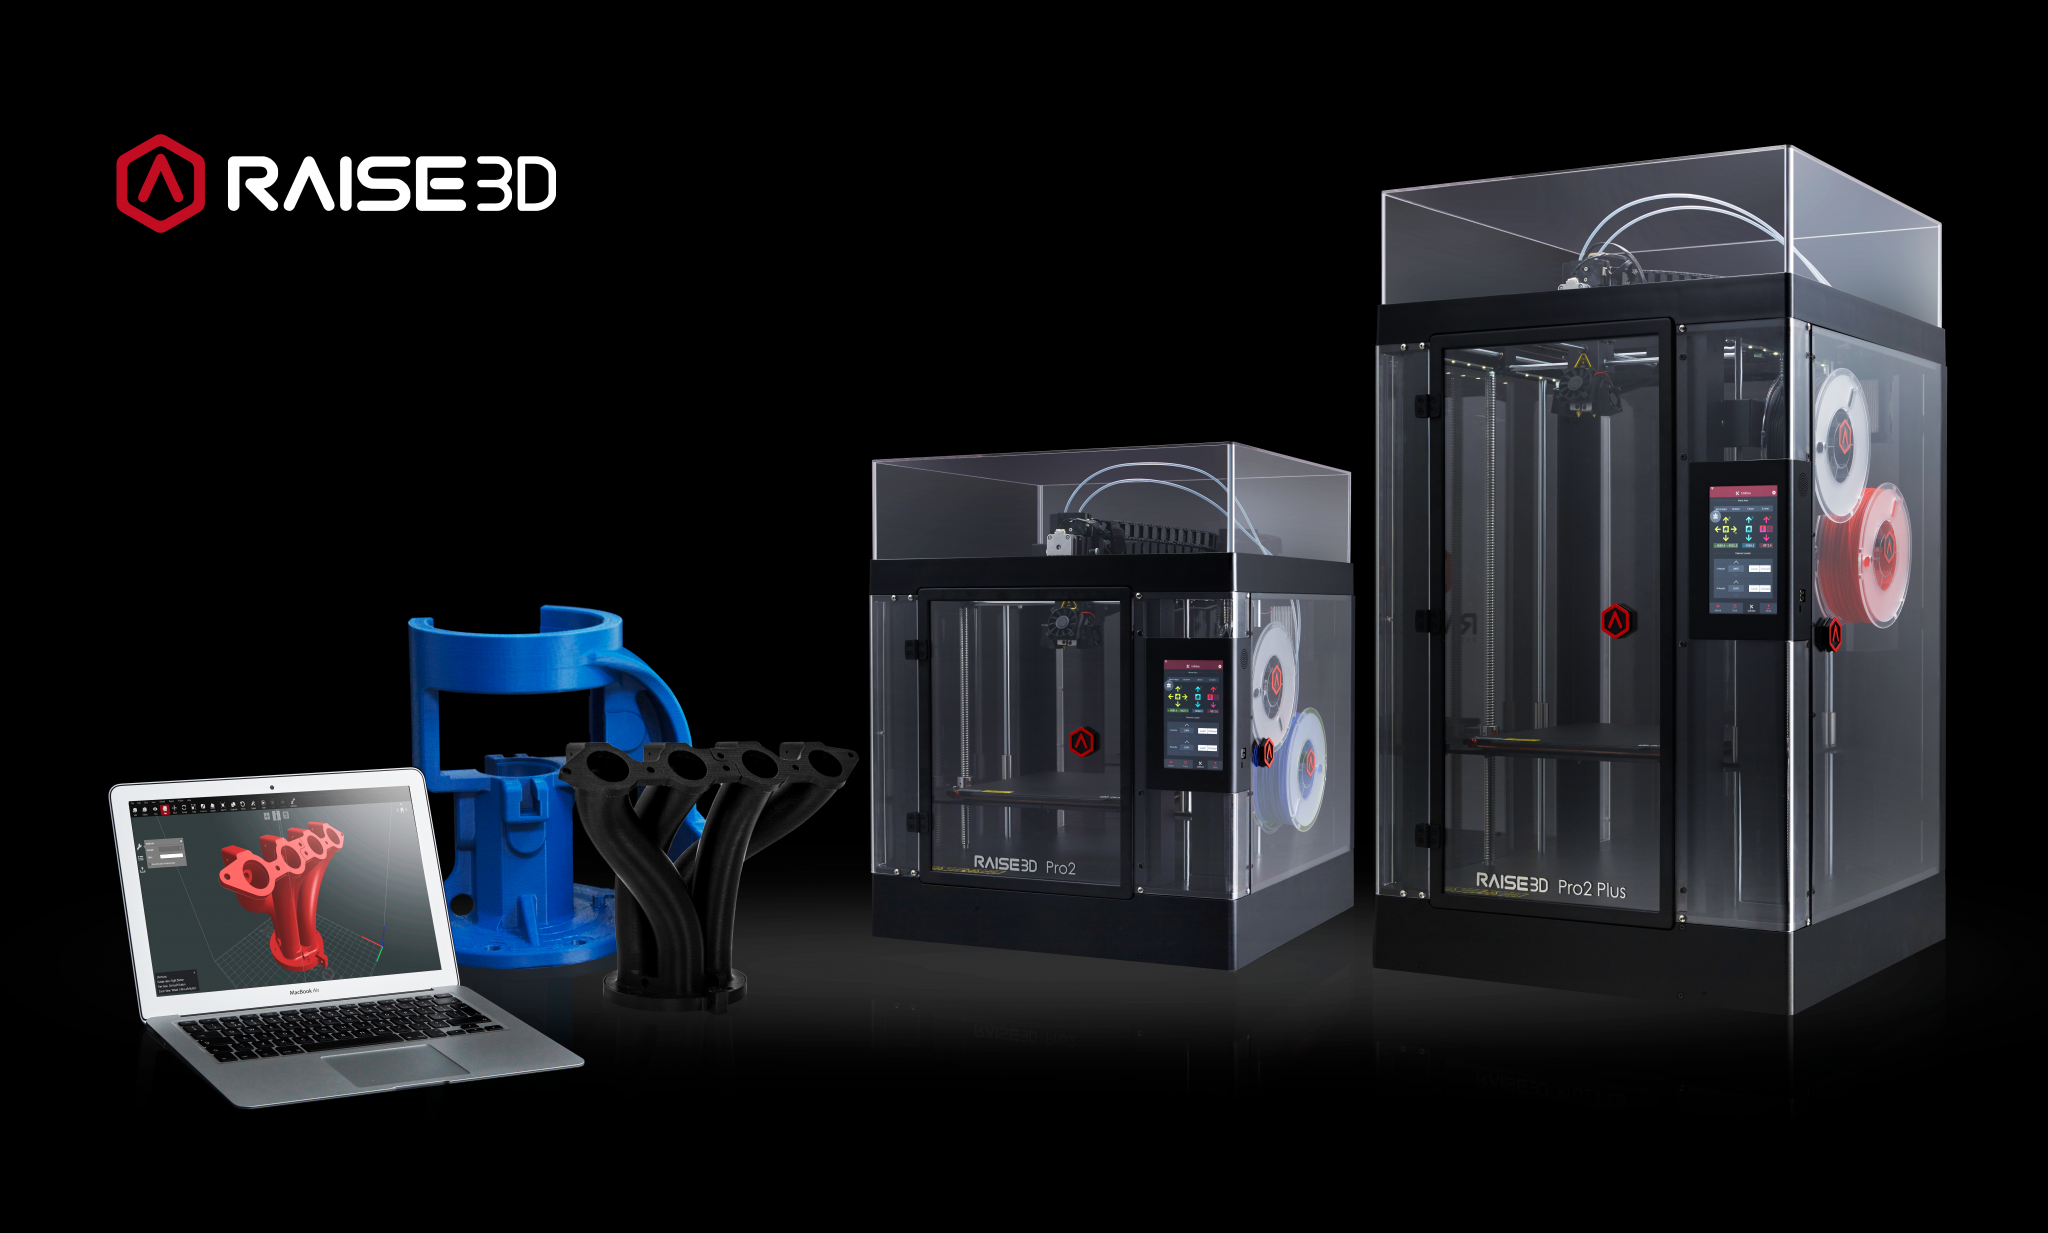 The Raise3D Pro2 3D printer and the rise of Flexible Manufacturing